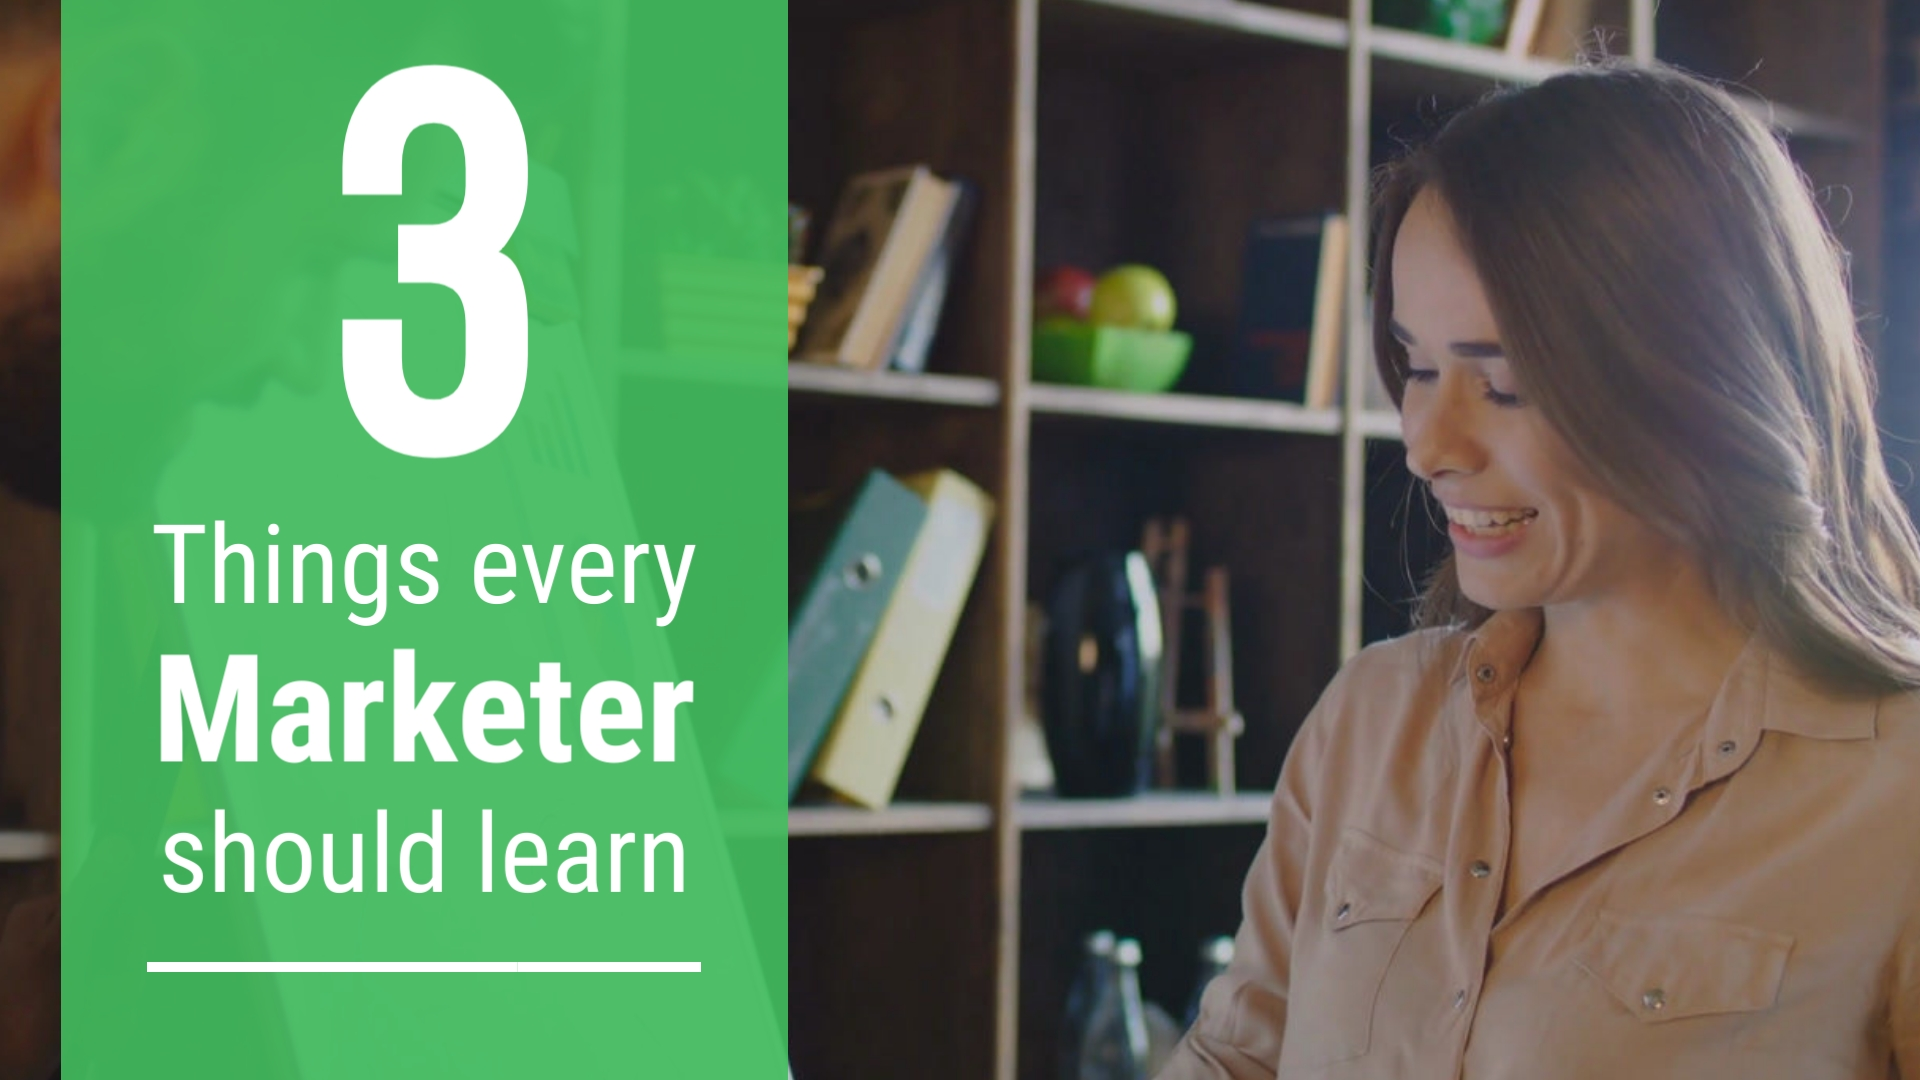 3 Things Every Marketer Should Learn - Listicle Video Template